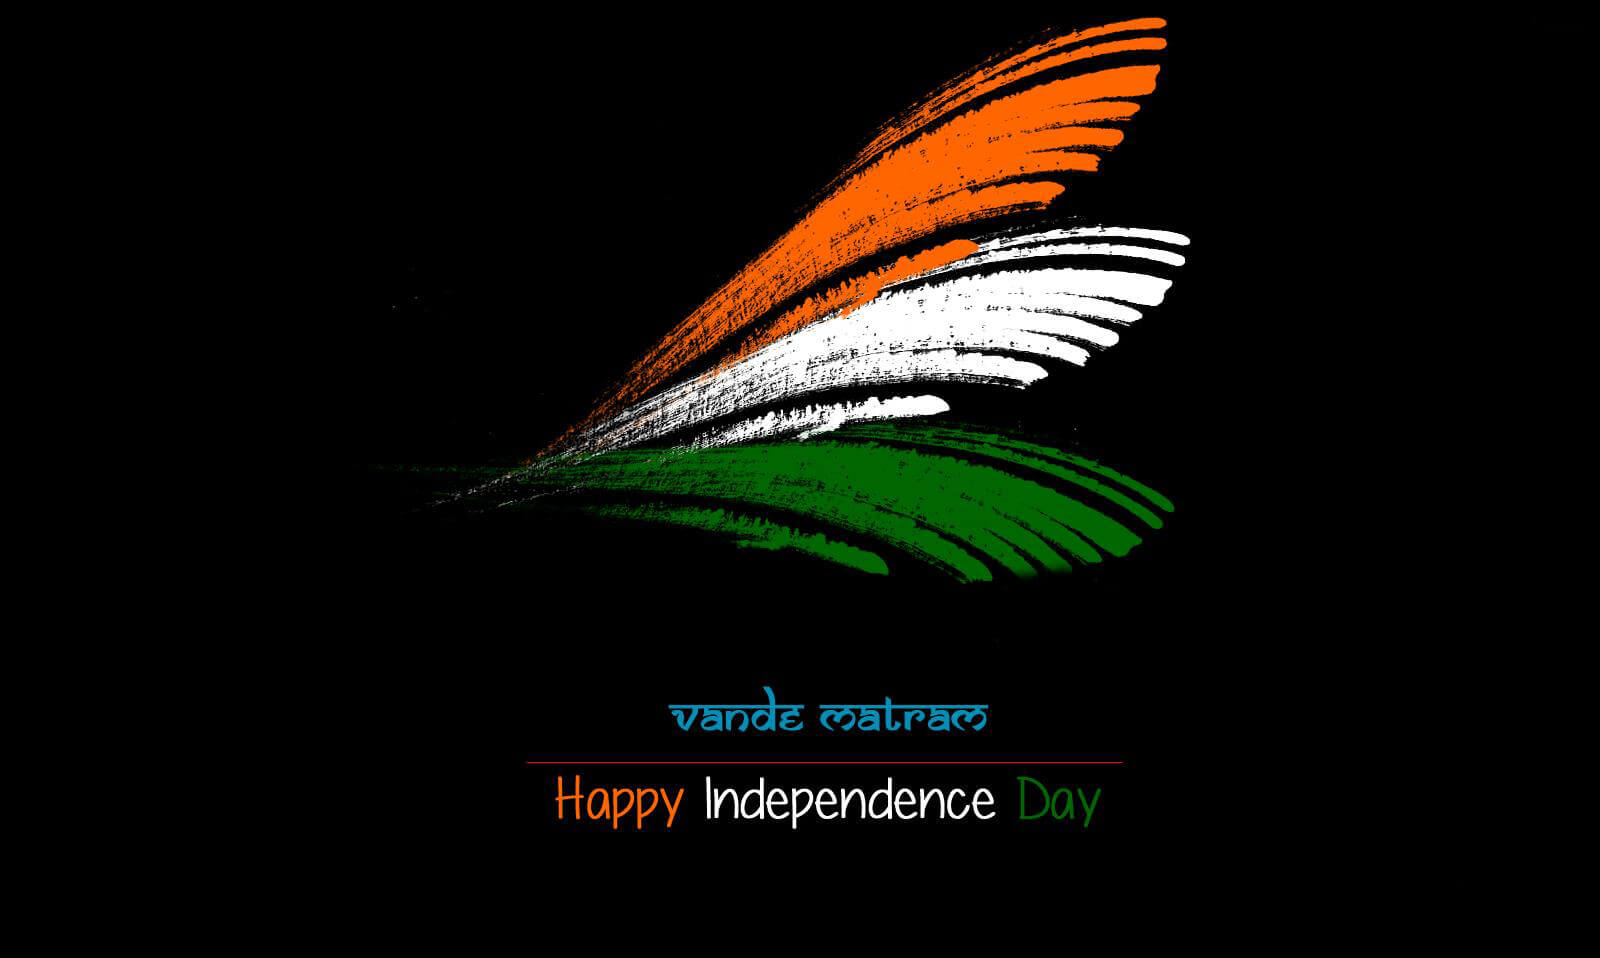 vande mataram india independence day tricolor feather hd wallpaper